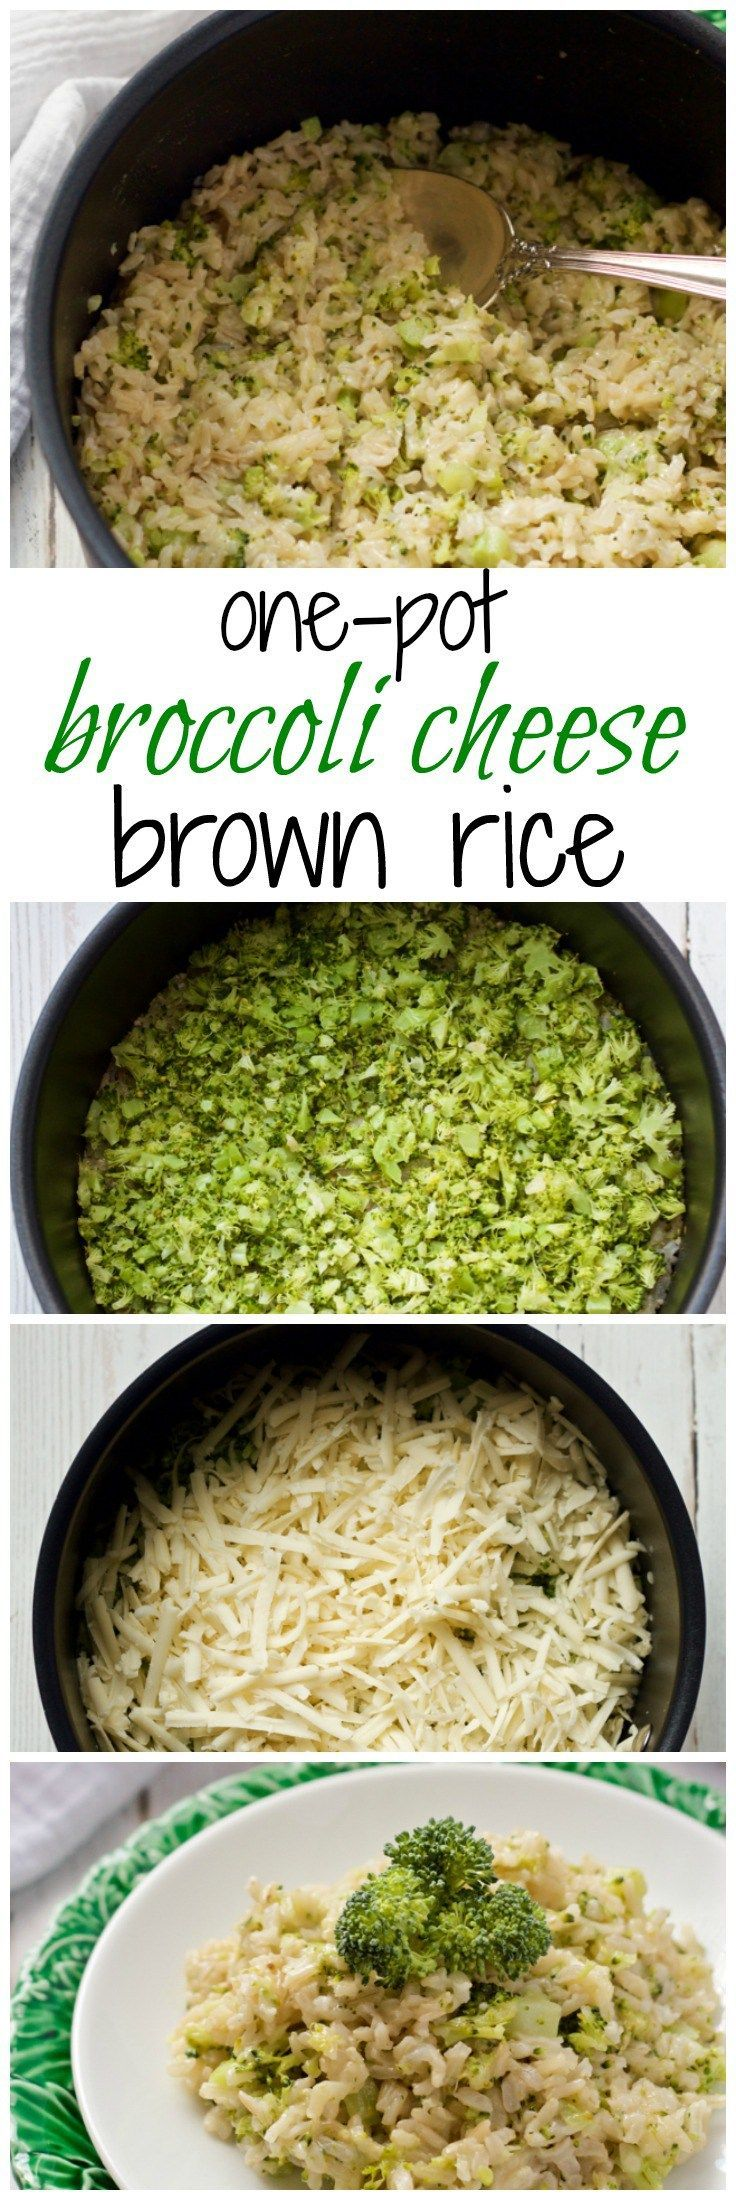 A Warm And Gooey One Pot Broccoli Cheese Brown Rice An Easy Side Dish